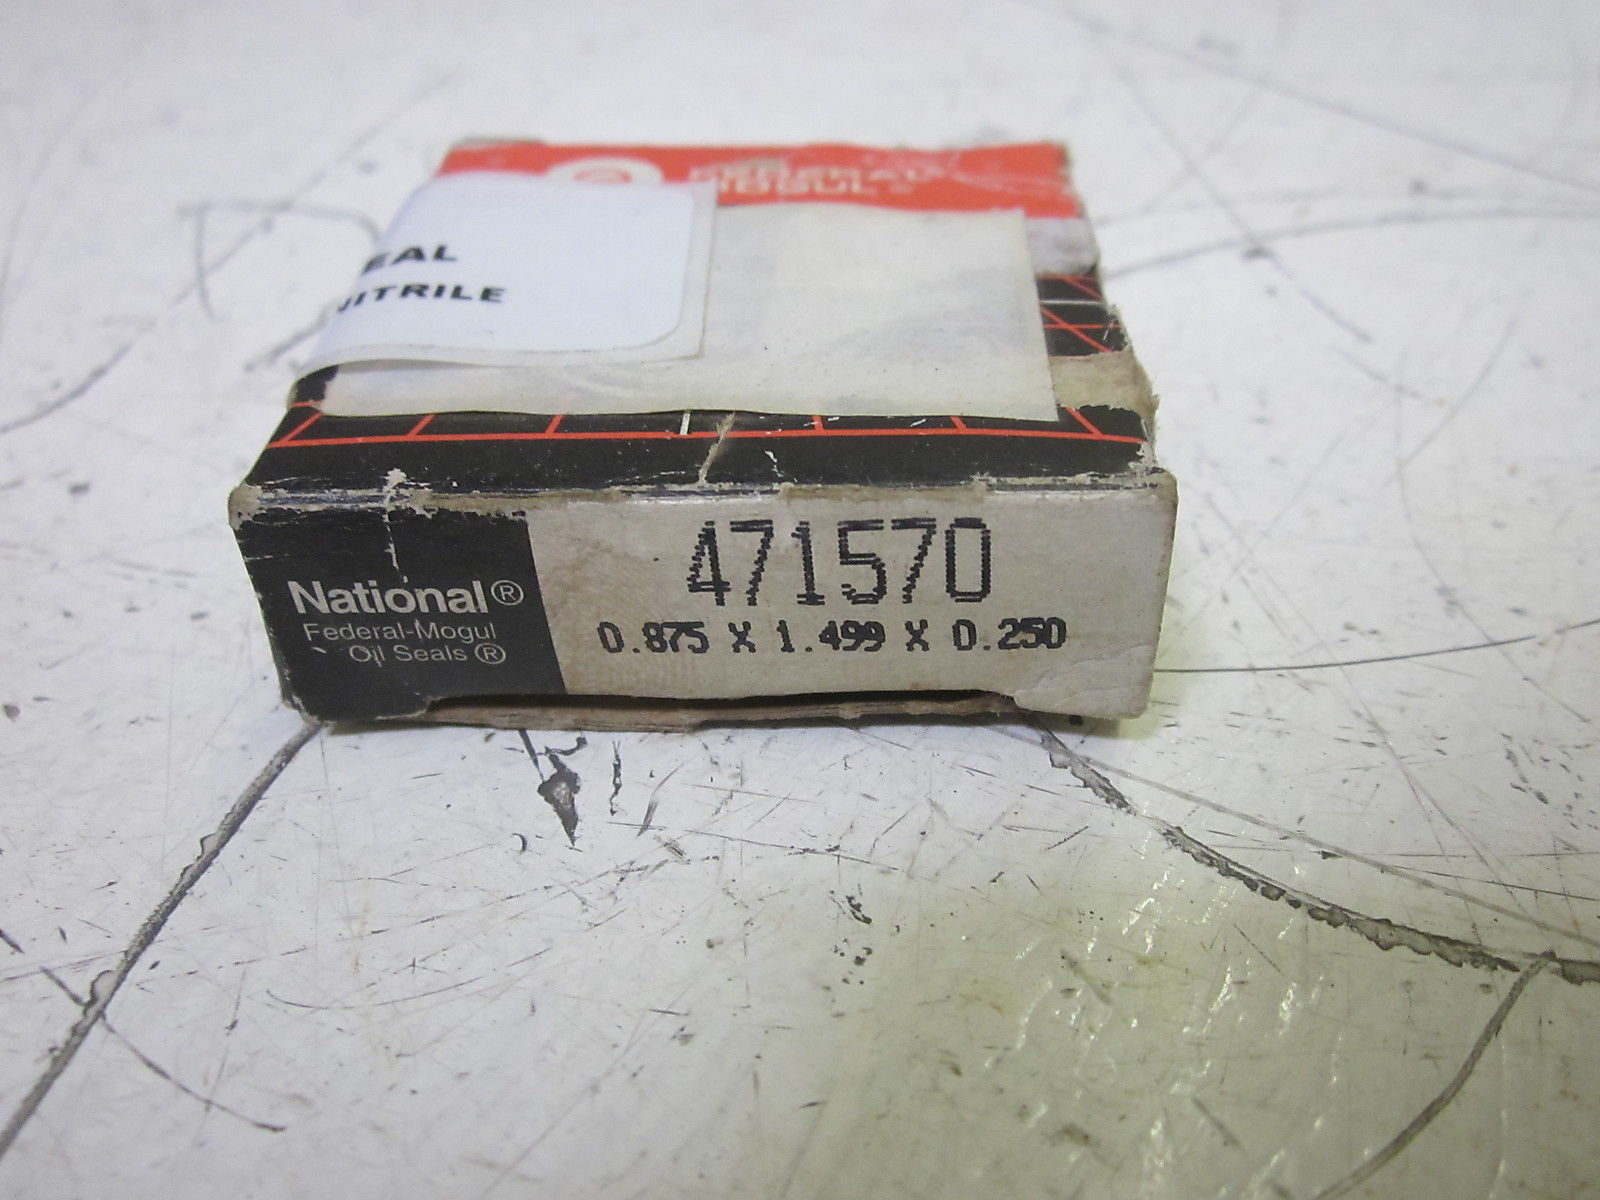 National Seal 471570 Dual Lip with One Spring 0.875 x 1.499 x 0.250